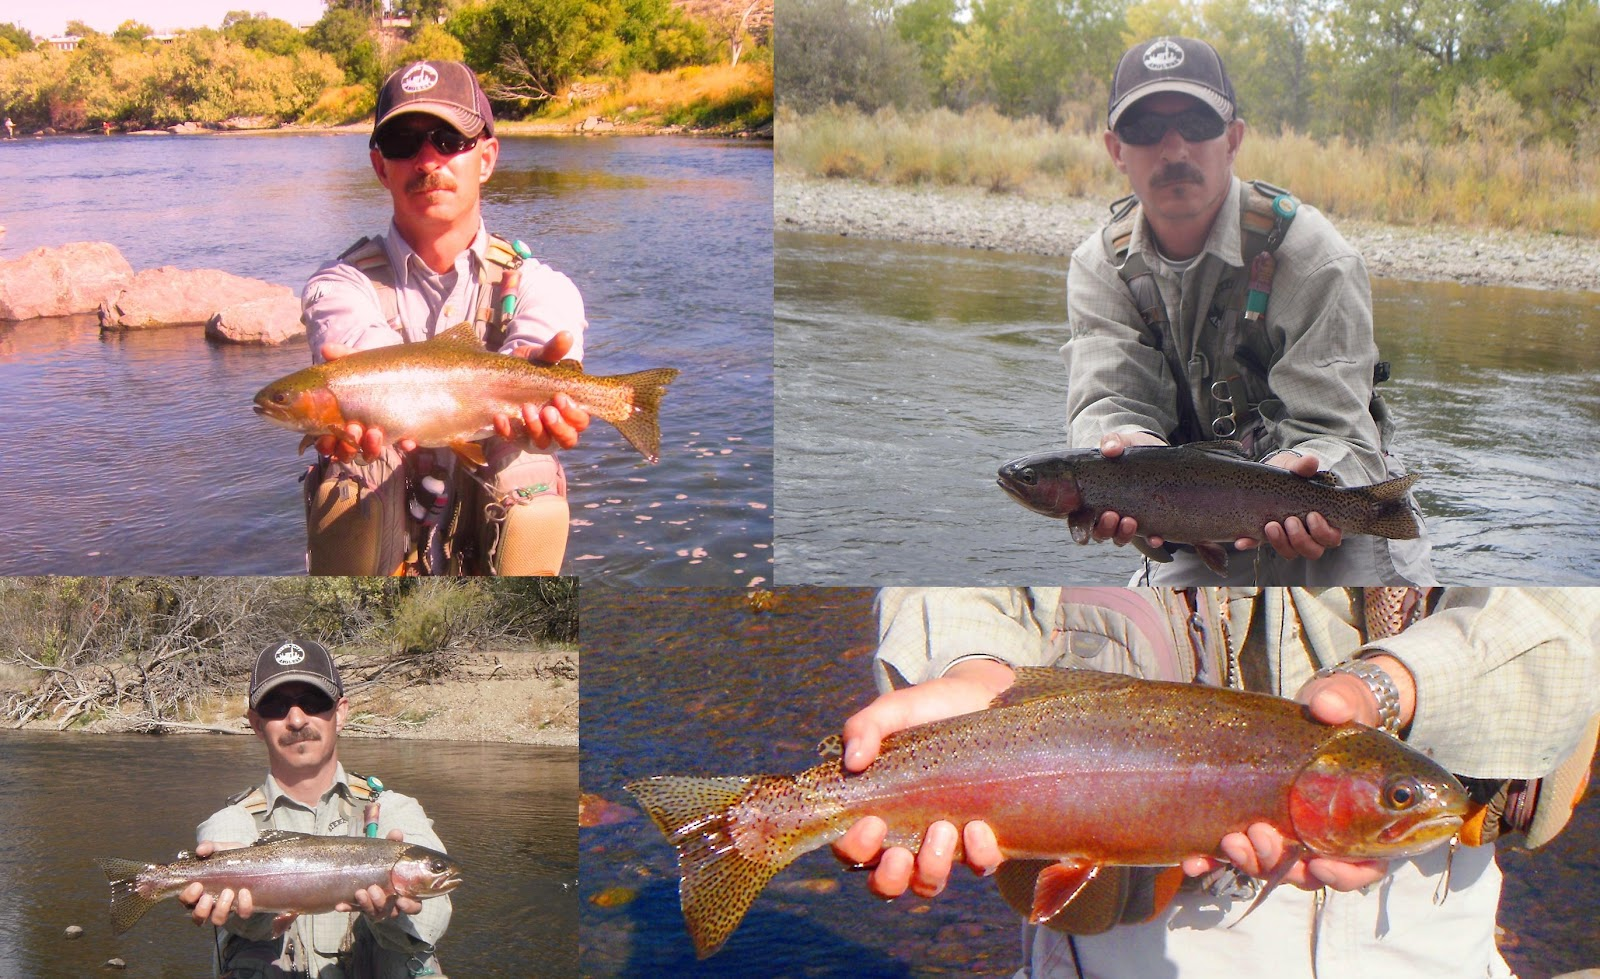 Arkansas river tailwater fly fishing report september 2012 for Fly fishing arkansas